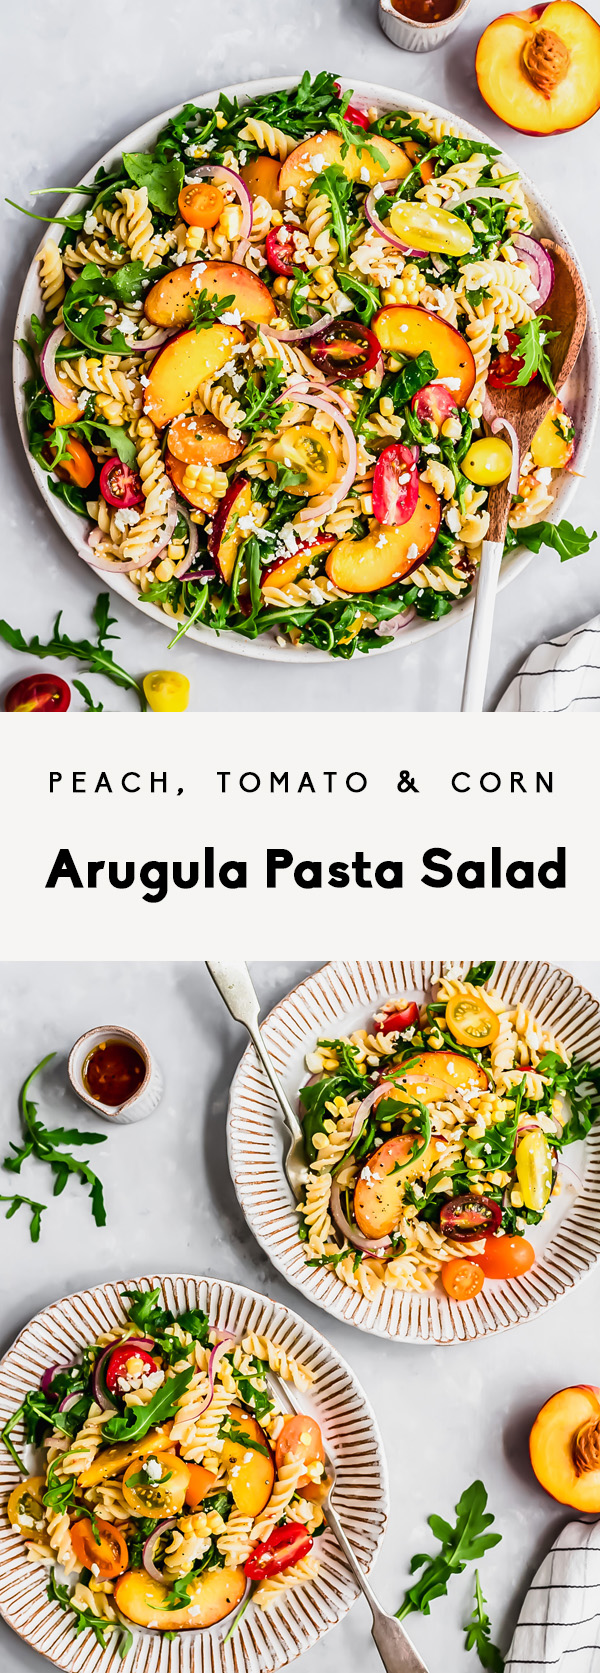 collage of arugula pasta salad with peaches, tomatoes, corn and feta